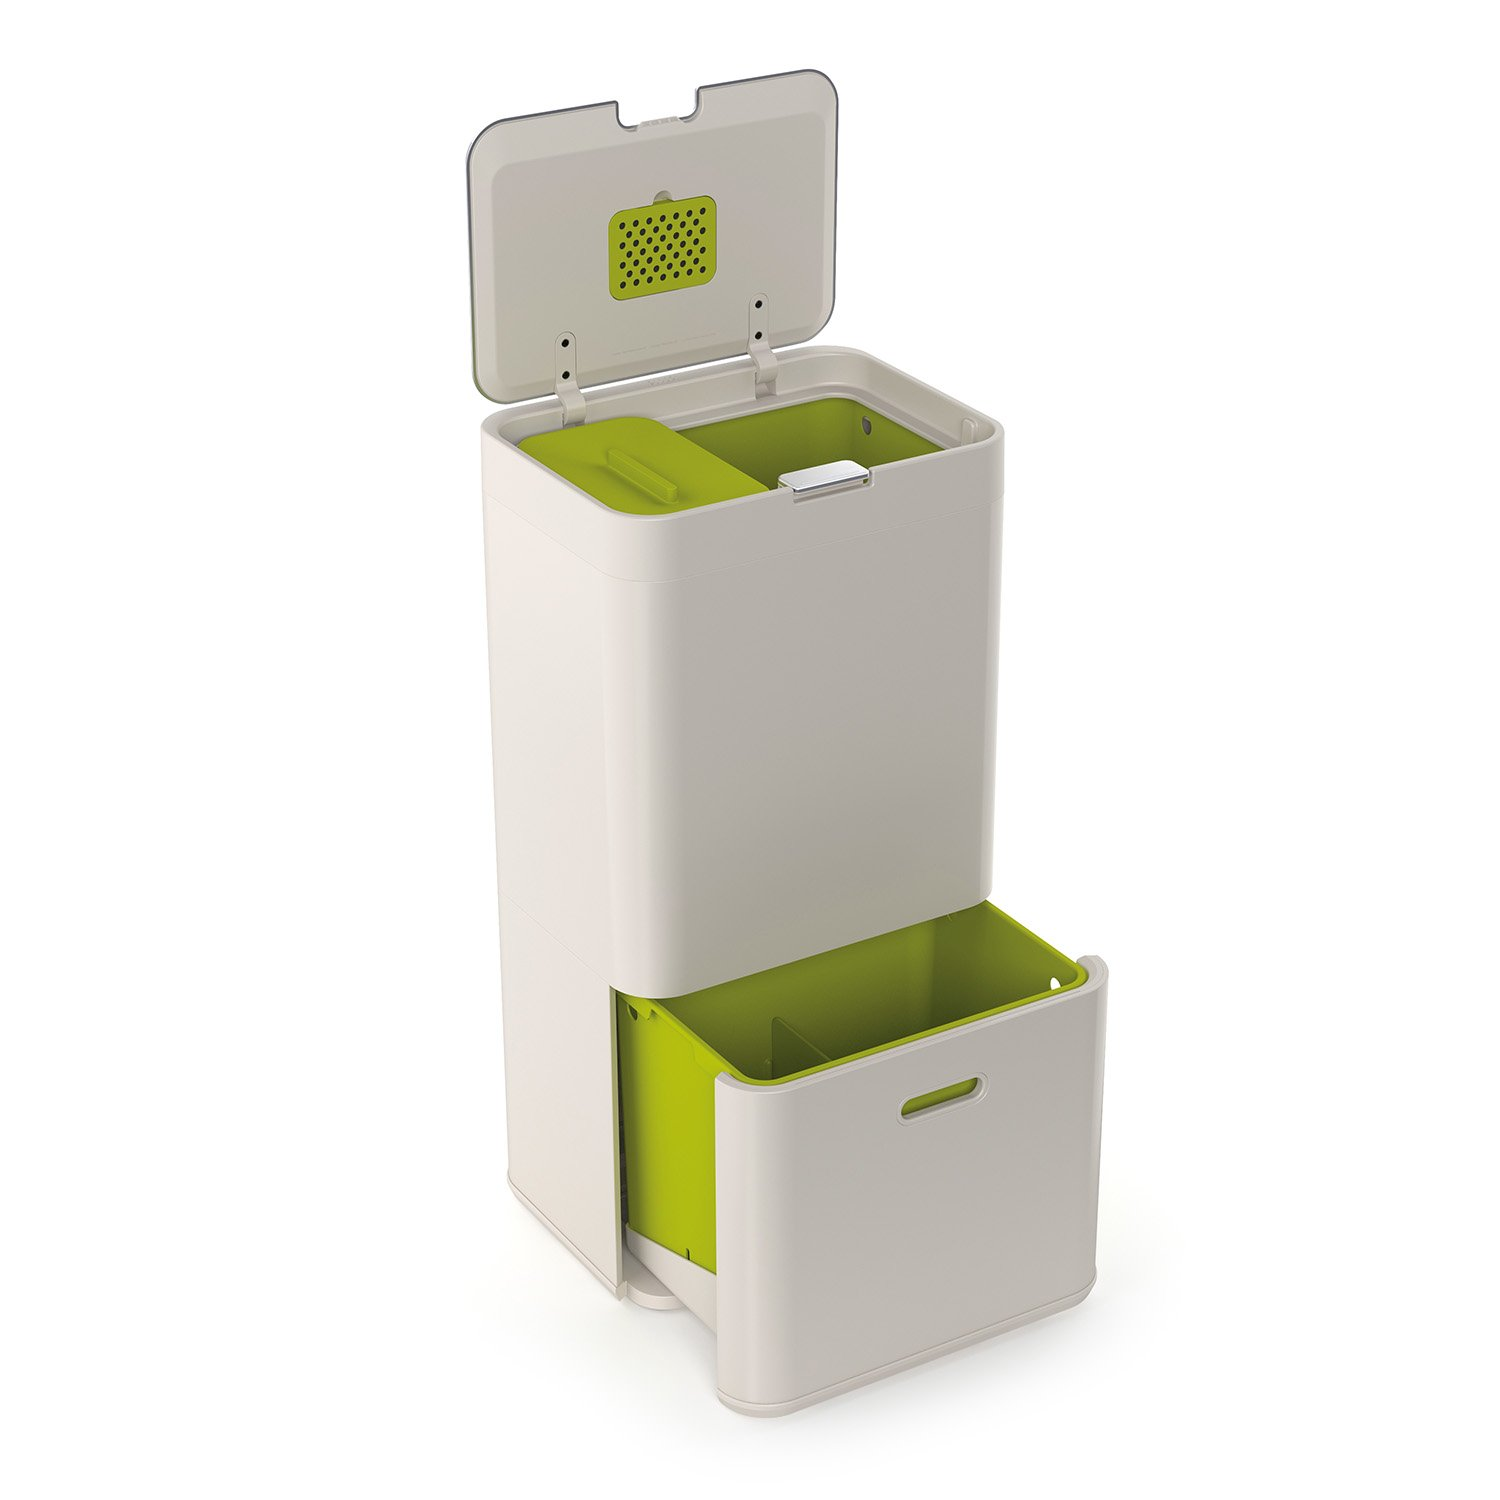 Amazon.com: Joseph Joseph 30001 Intelligent Waste Totem Kitchen ...